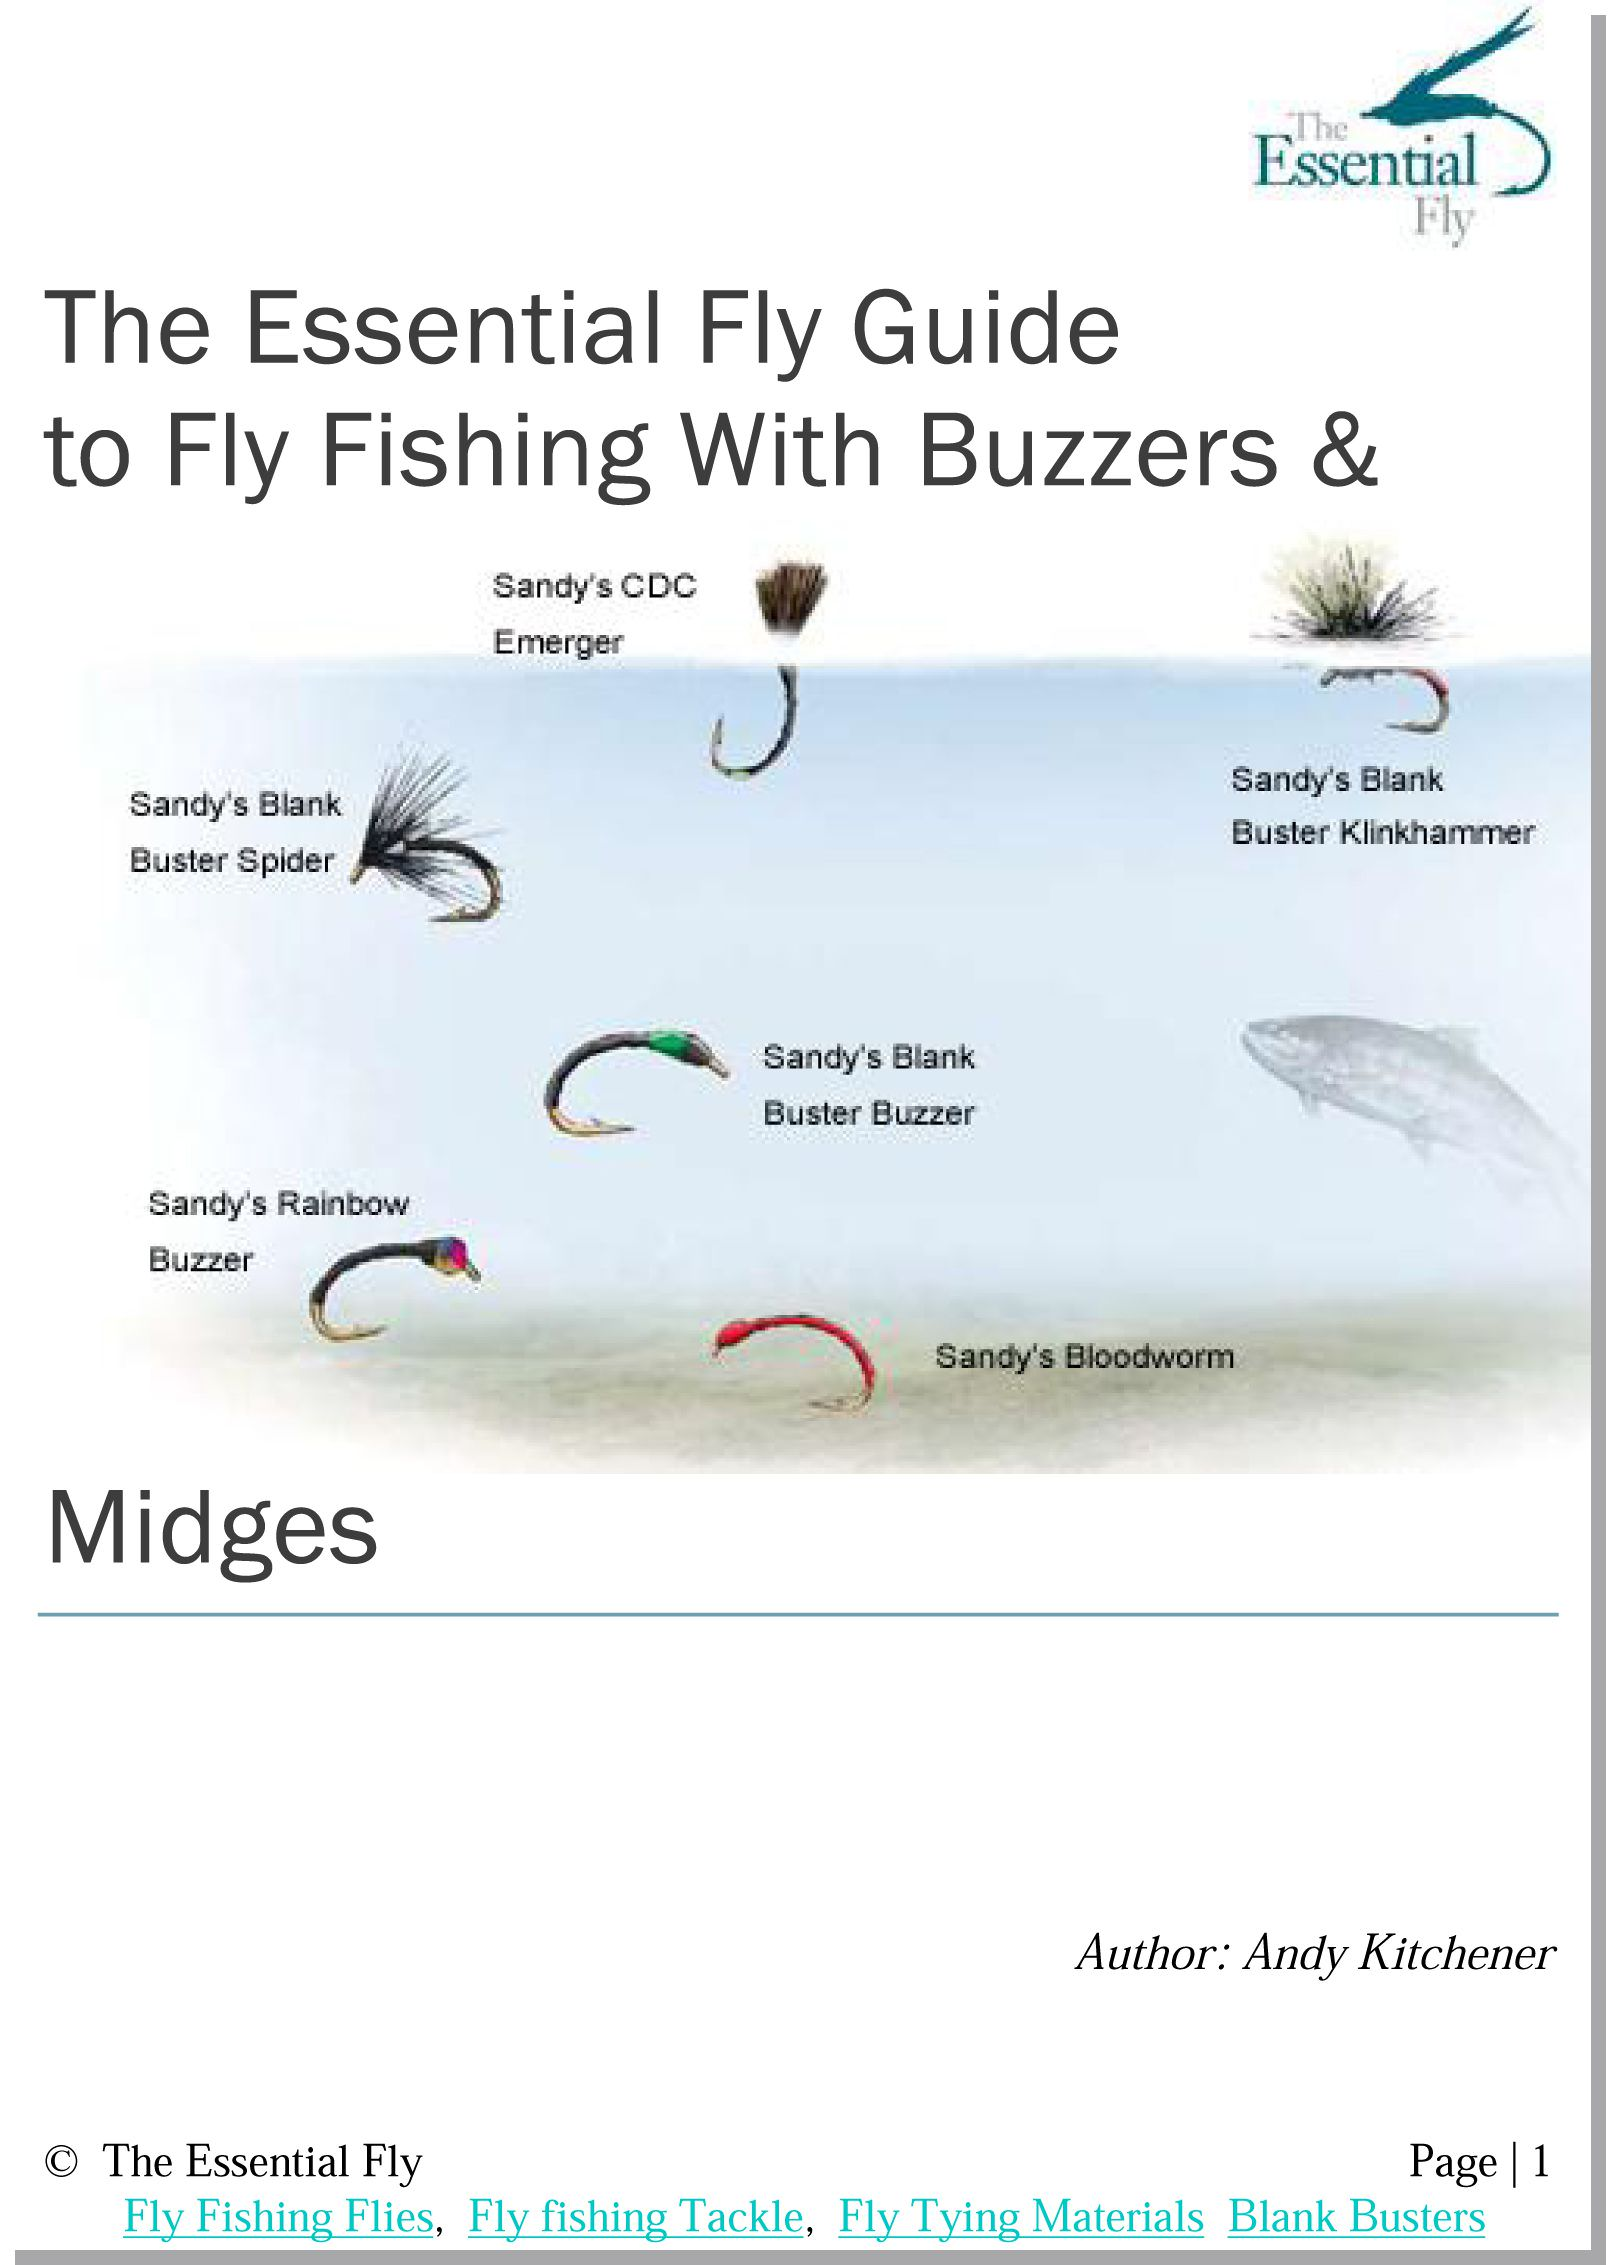 guide to trout fly fishing with buzzers & midges e-booklet | the, Fly Fishing Bait